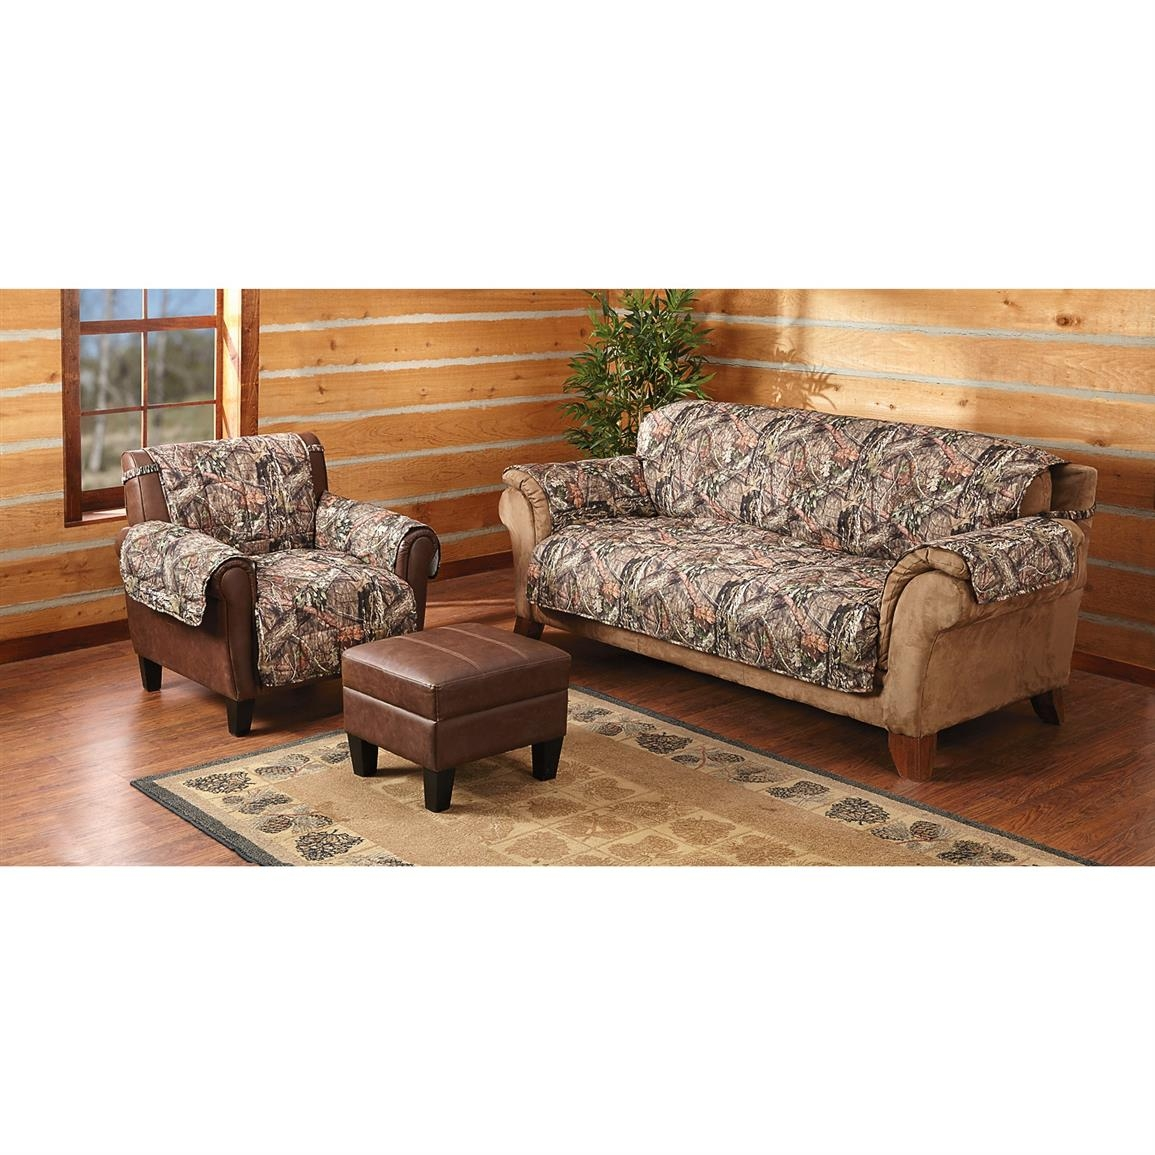 Mossy Oak Camo Furniture Covers 647980 Furniture Covers At In Camo Sofa Cover (Image 10 of 15)